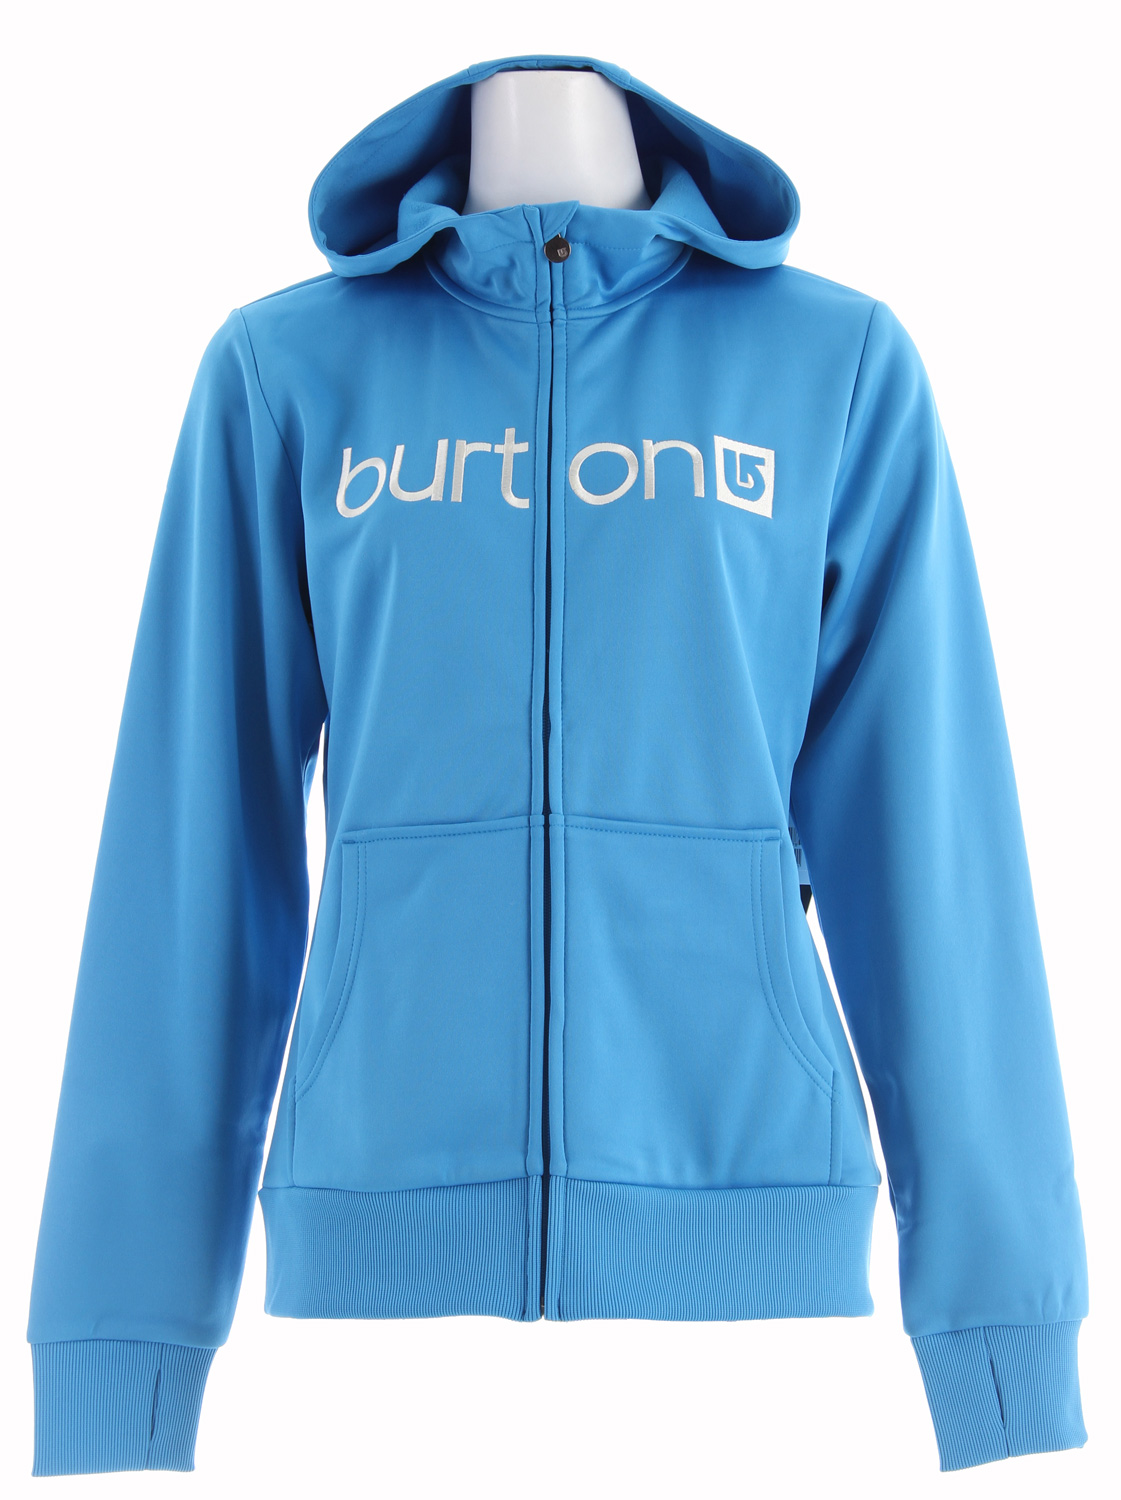 Snowboard Four scoops of fleece, hold the cold cotton, quick-drying heat for mountain or street.Key Features of the Burton Scoop Hoodie: DRYRIDE Thermex Bonded Fleece Fulltime Hood Kangaroo Handwarmer Pocket Sound Pocket with Headphone Cable Port Ribbed Cuffs and Hem - $51.95